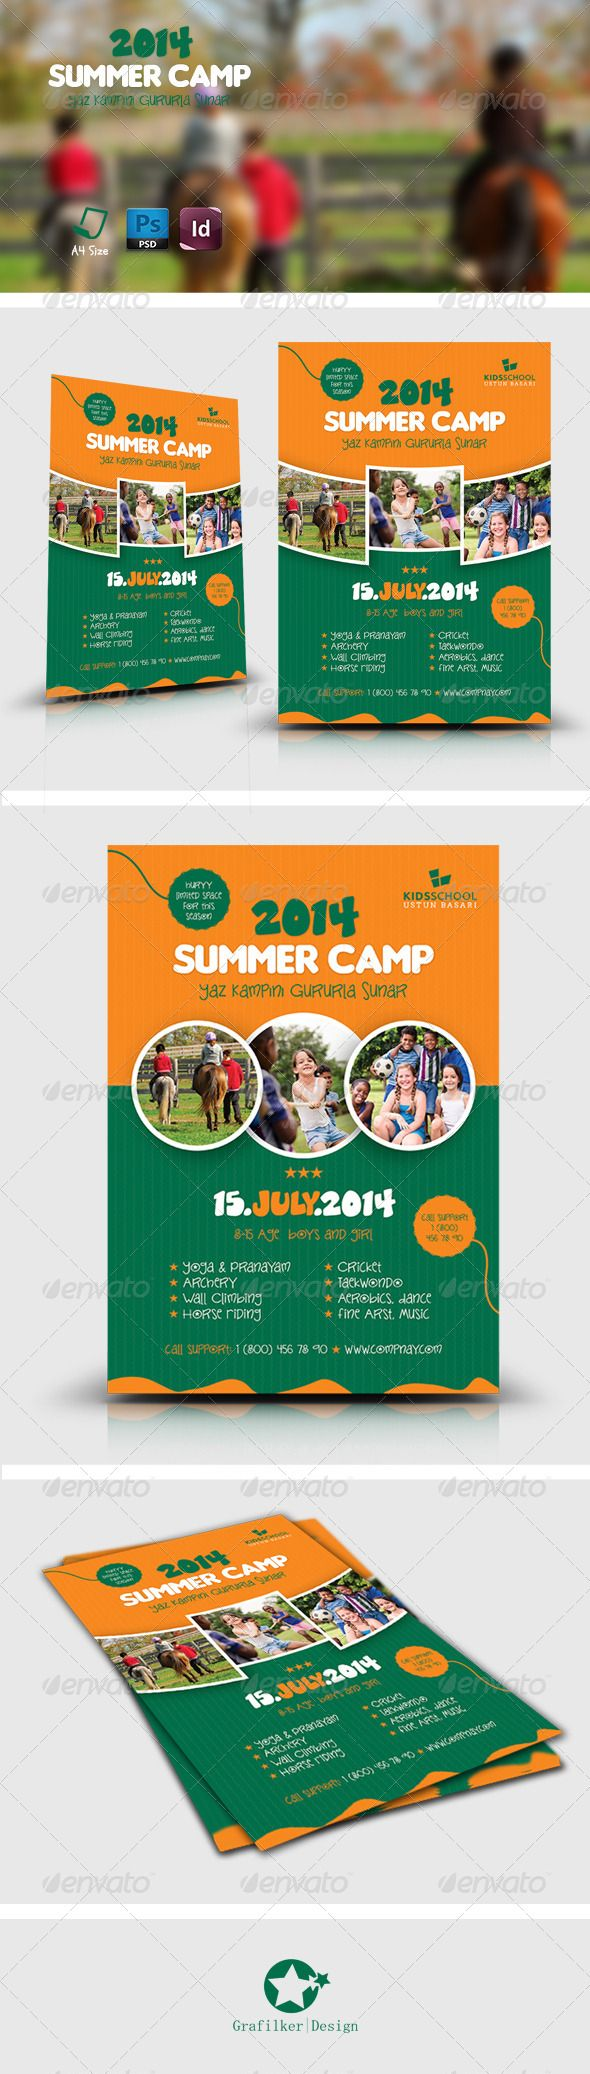 kids summer camp flyers summer graphics and summer activities summer camp flyer templates